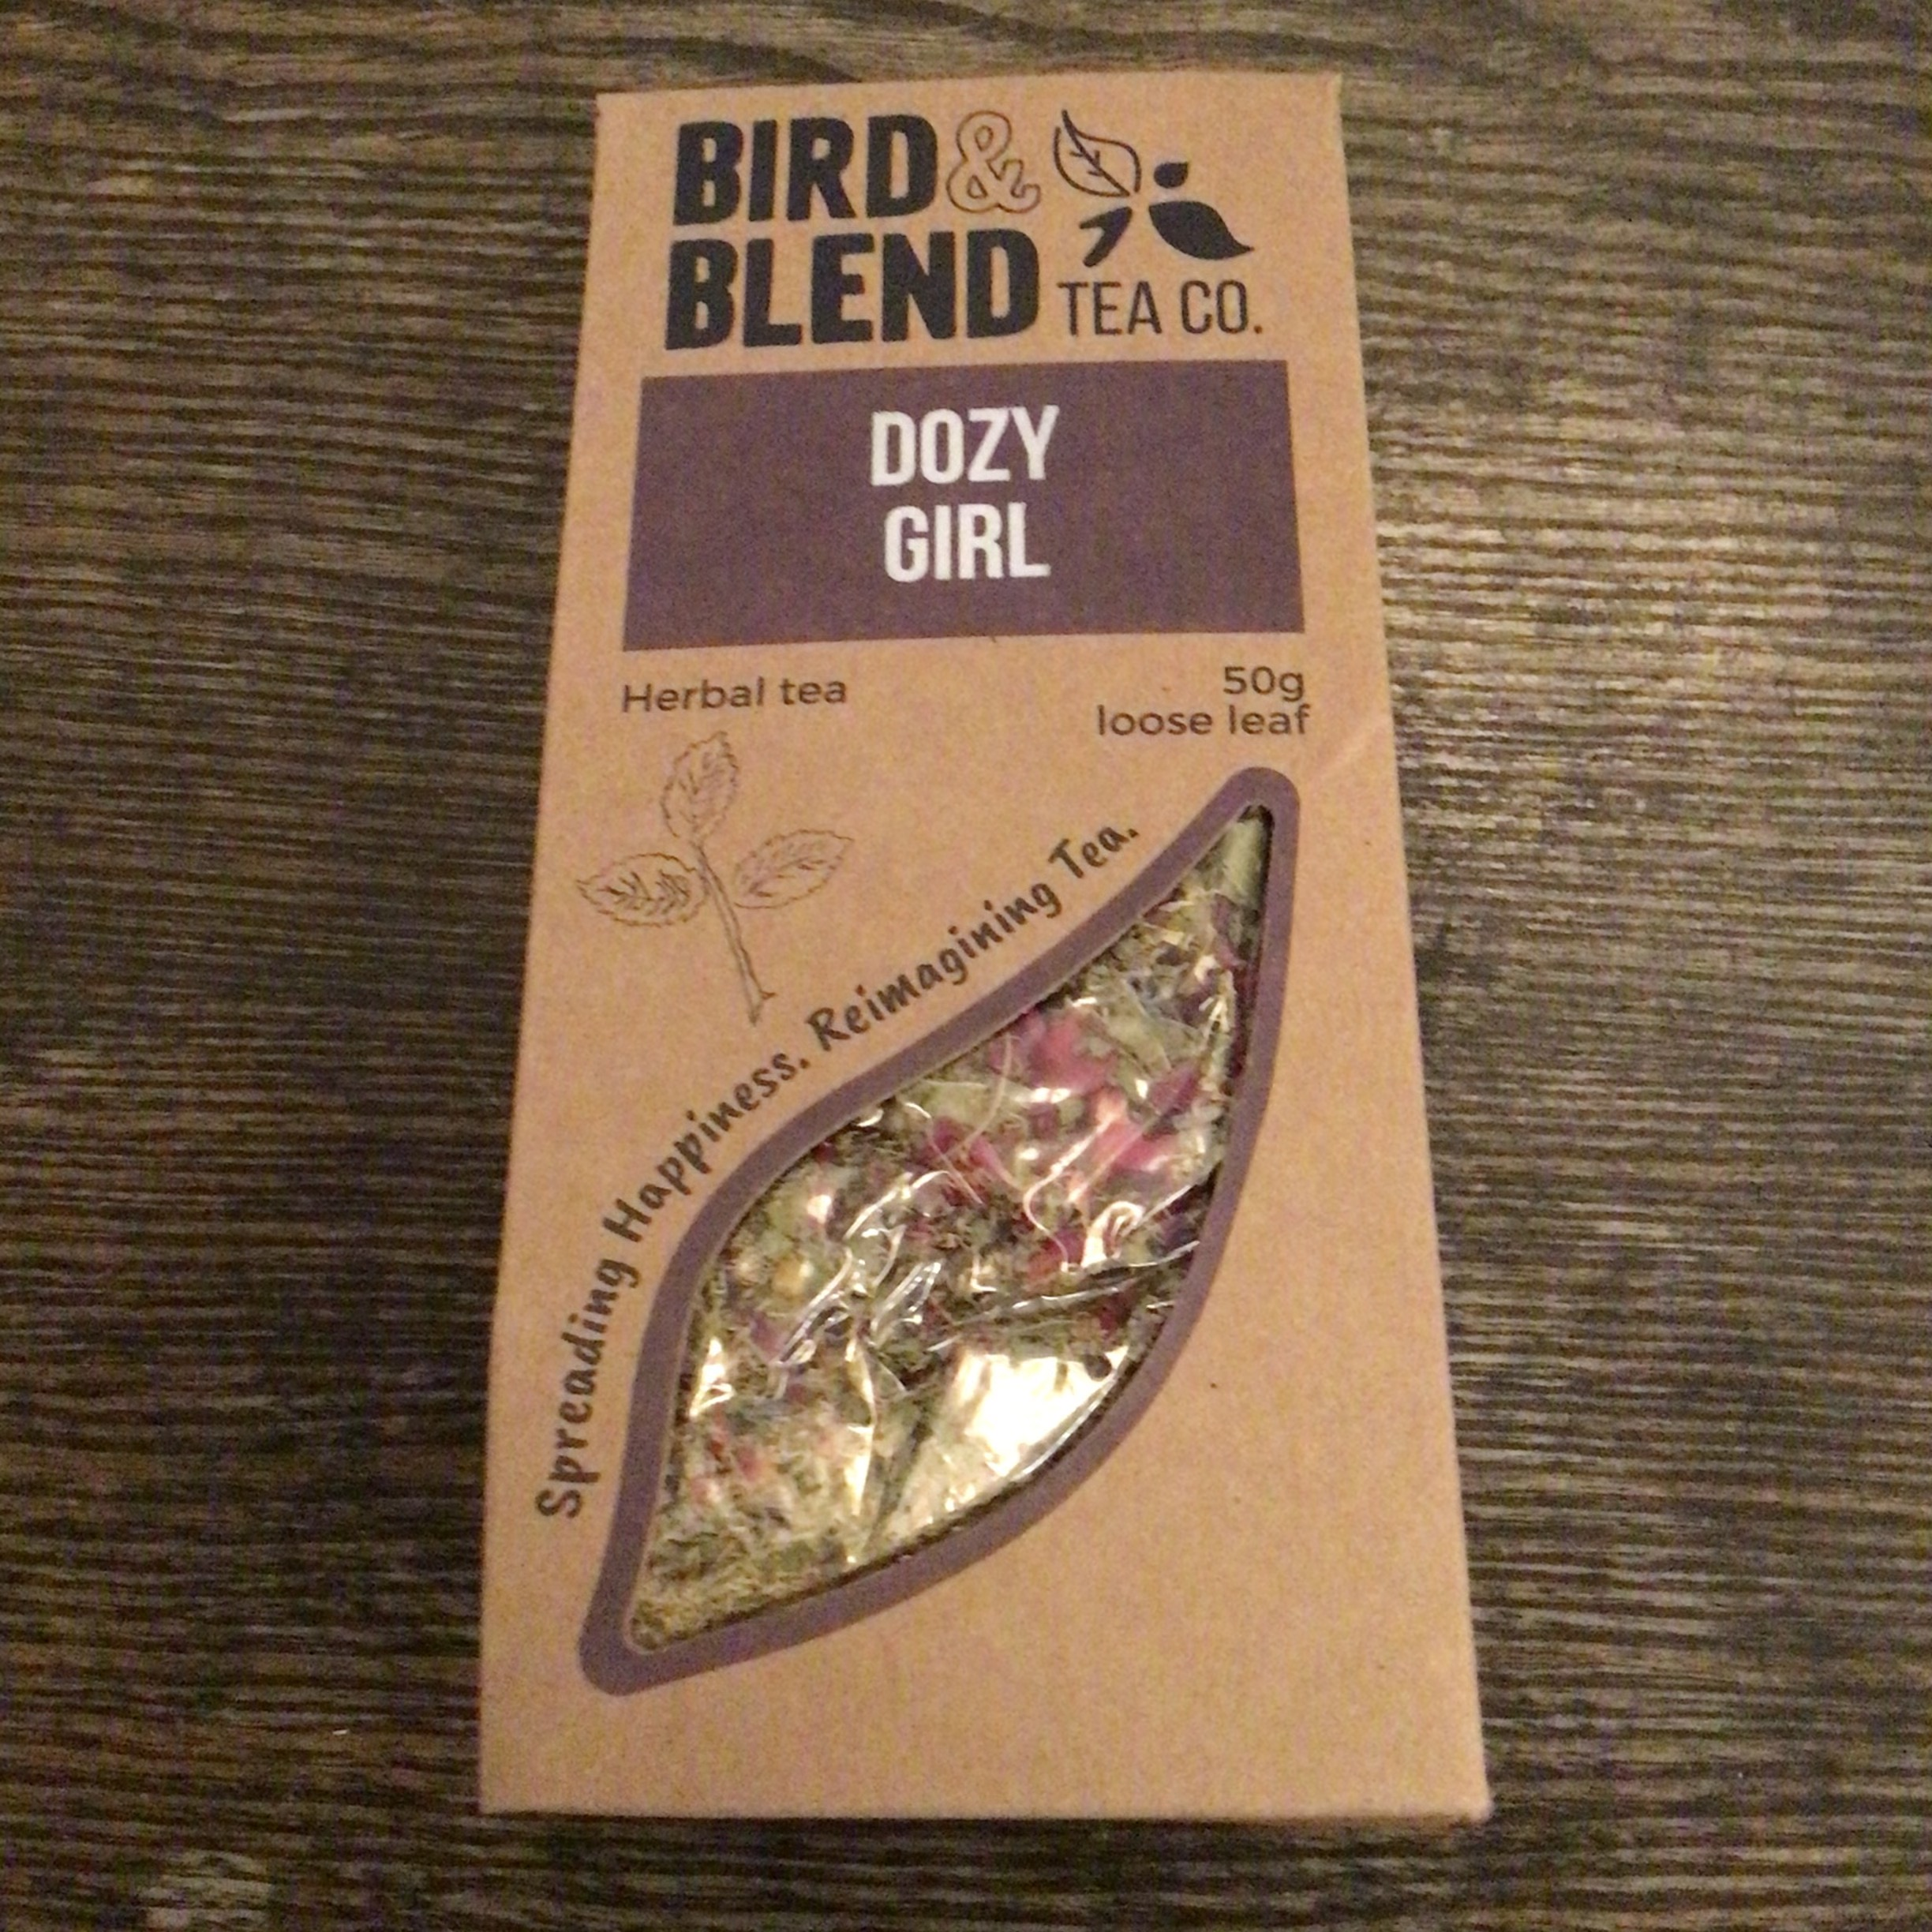 Bird & Blend - Dozy Girl Loose Leaf Tea (50g)